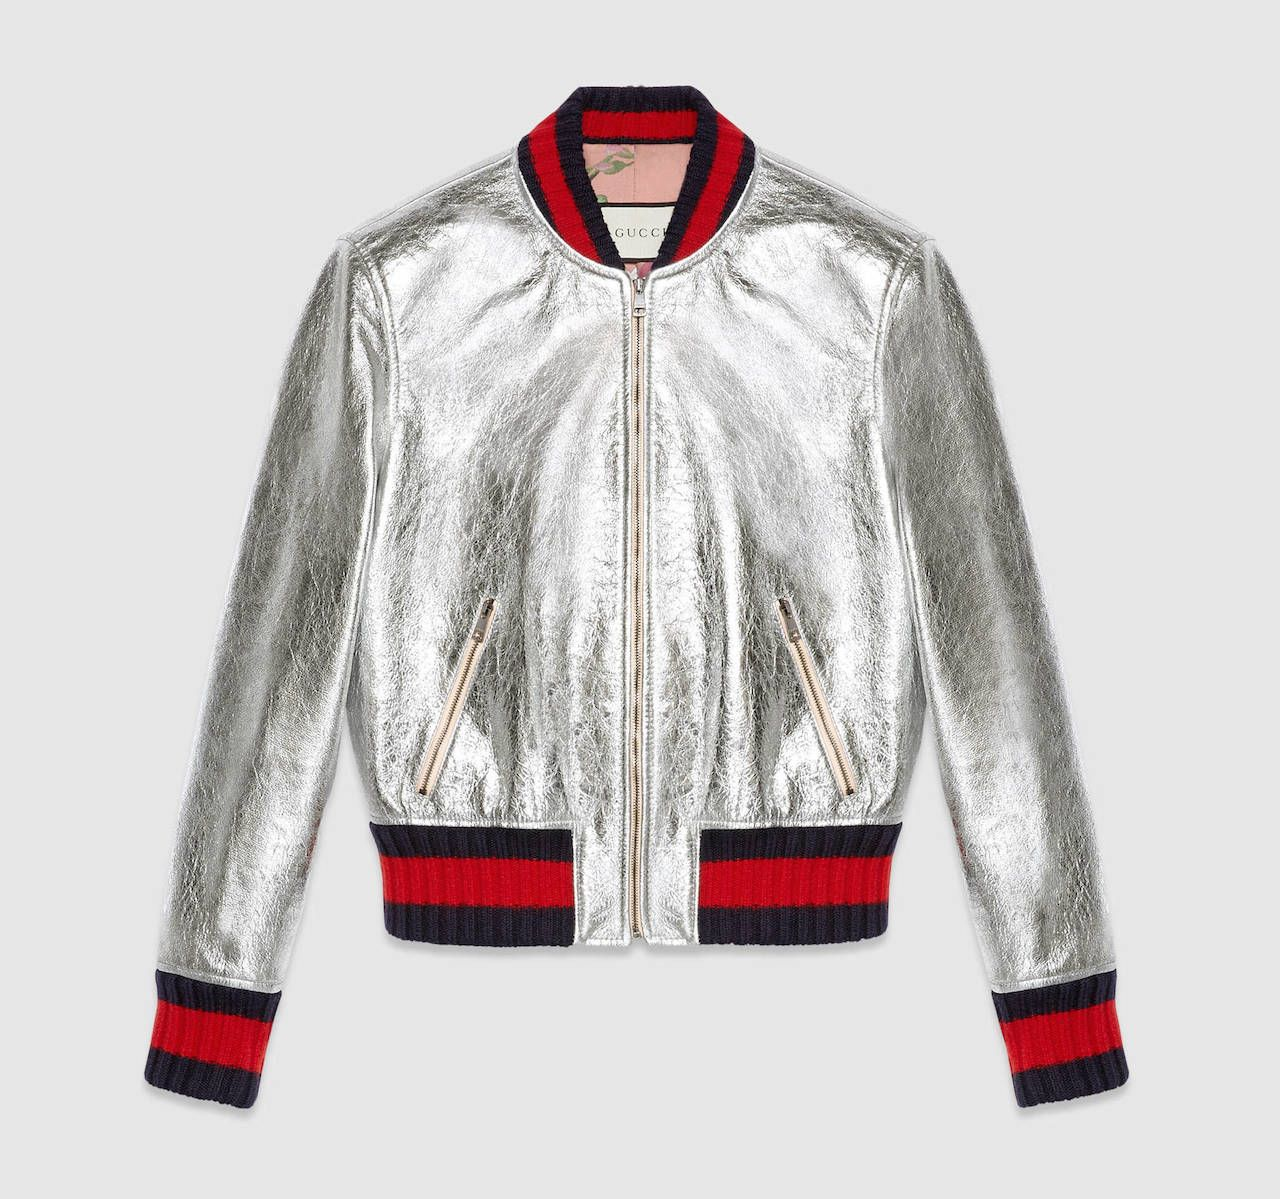 gucci bomber jacket